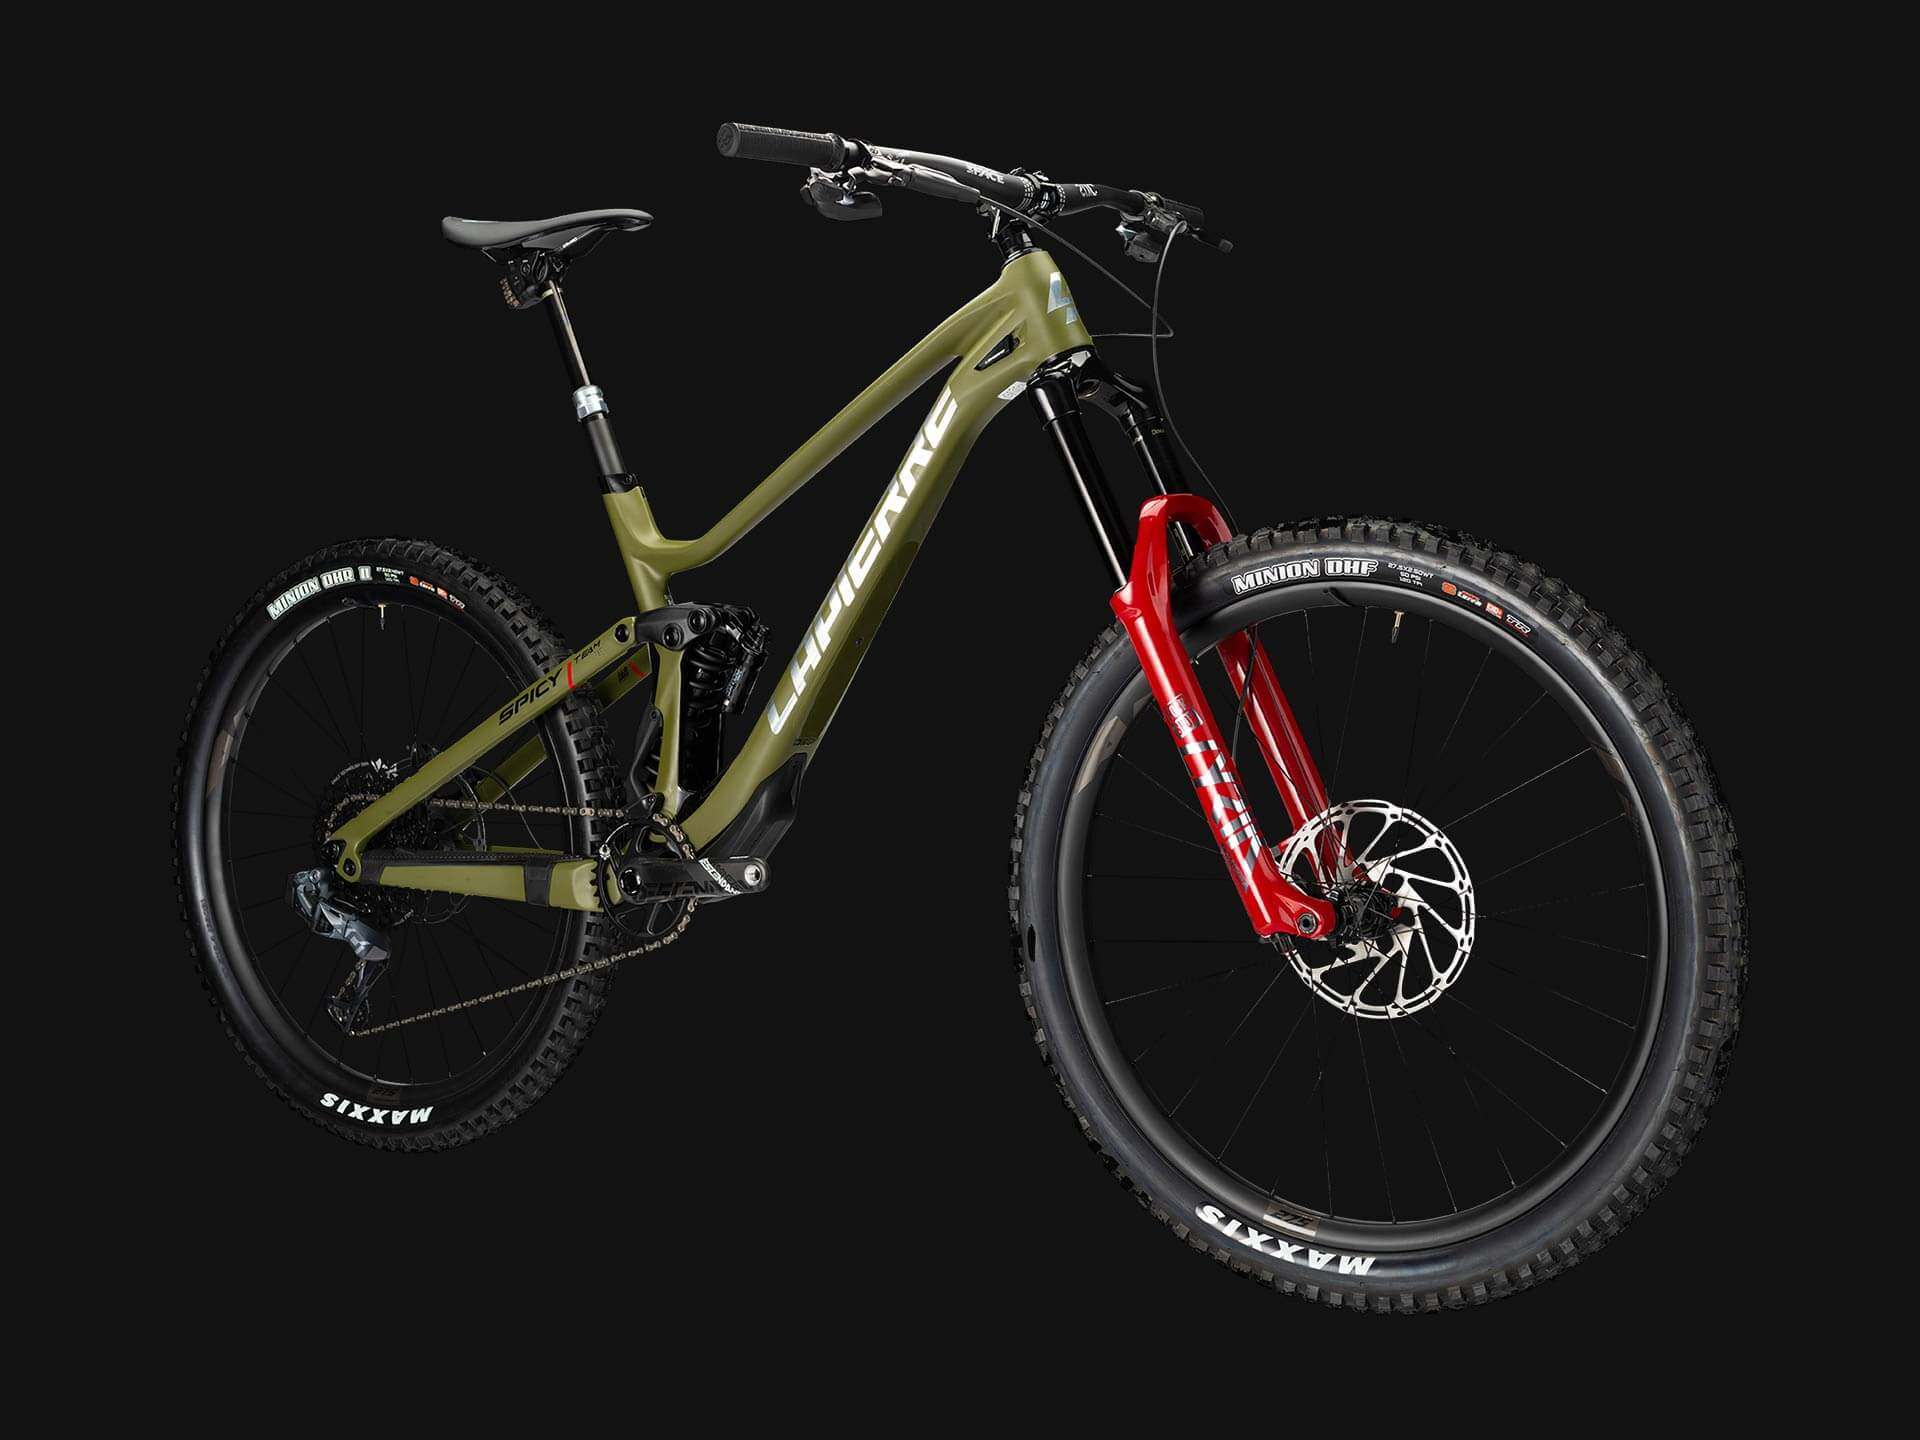 Lapierre Spicy Team Ultimate Enduro-Mountainbike